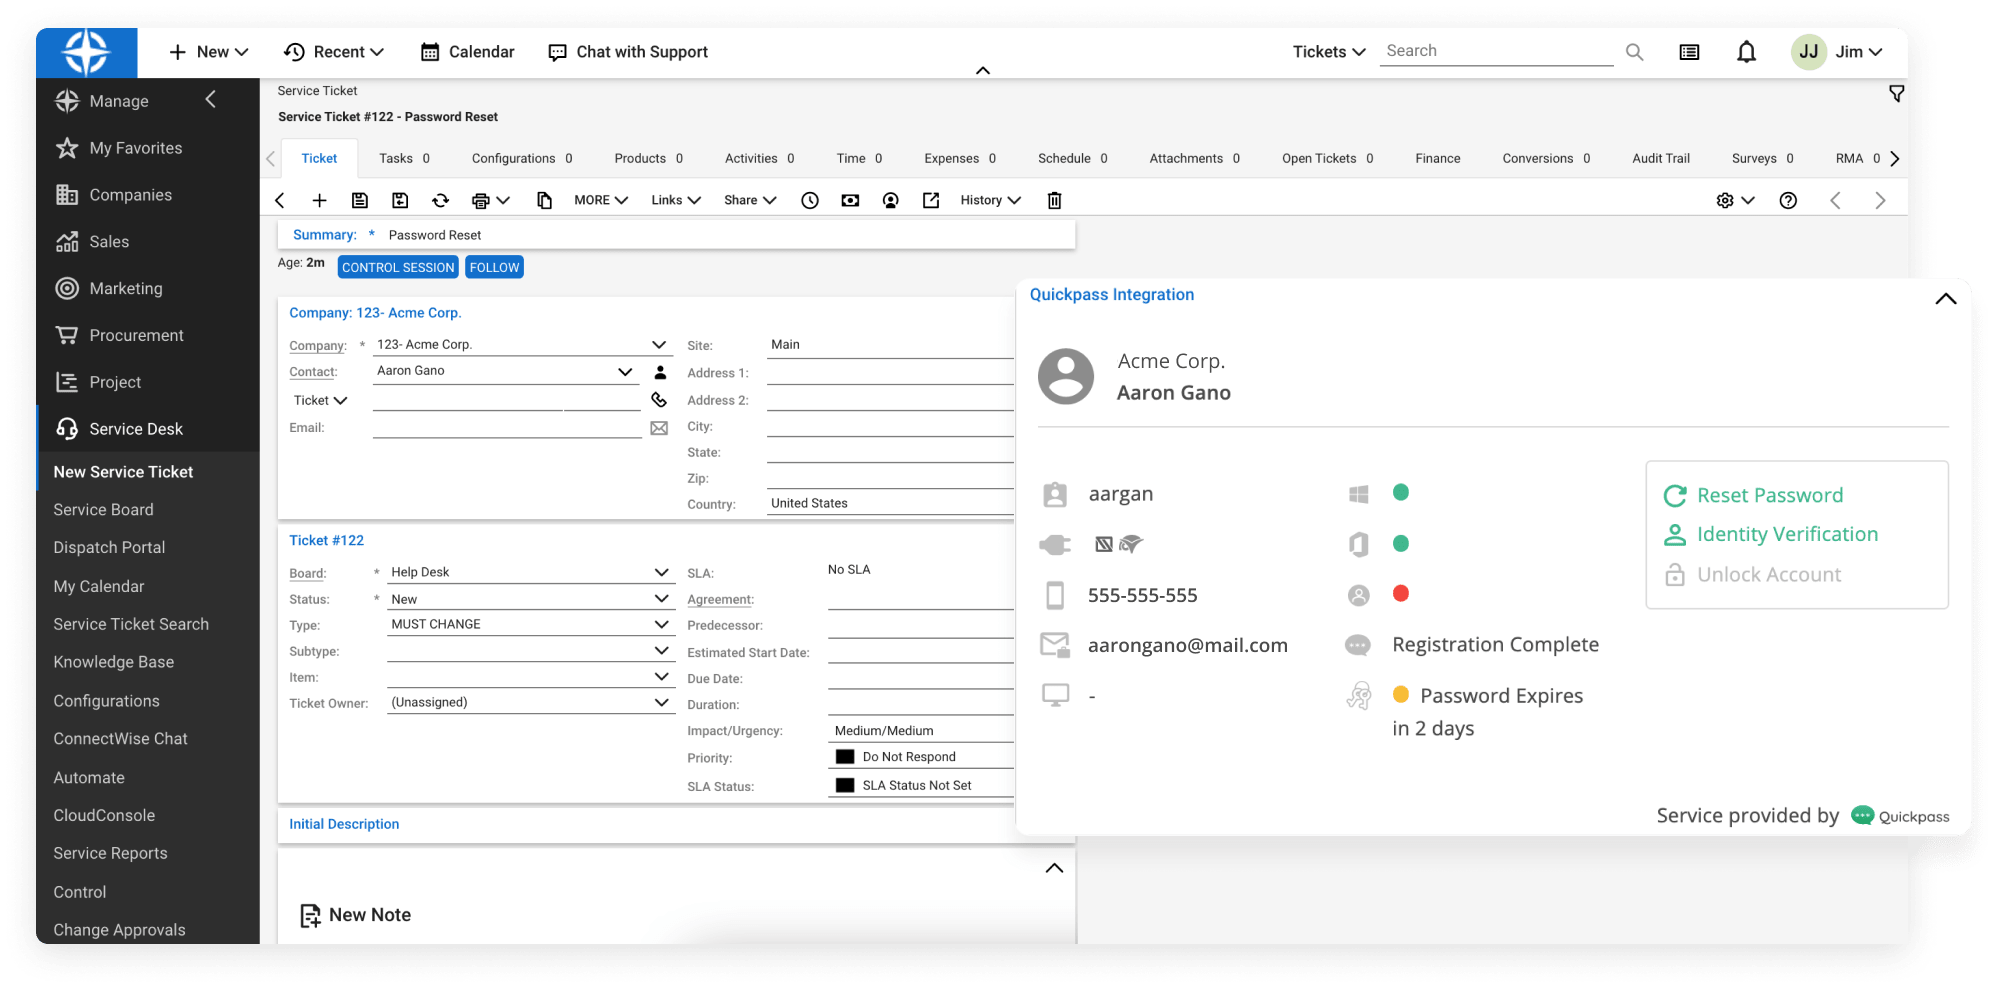 ConnectWise Manage interface with Quickpass Pod